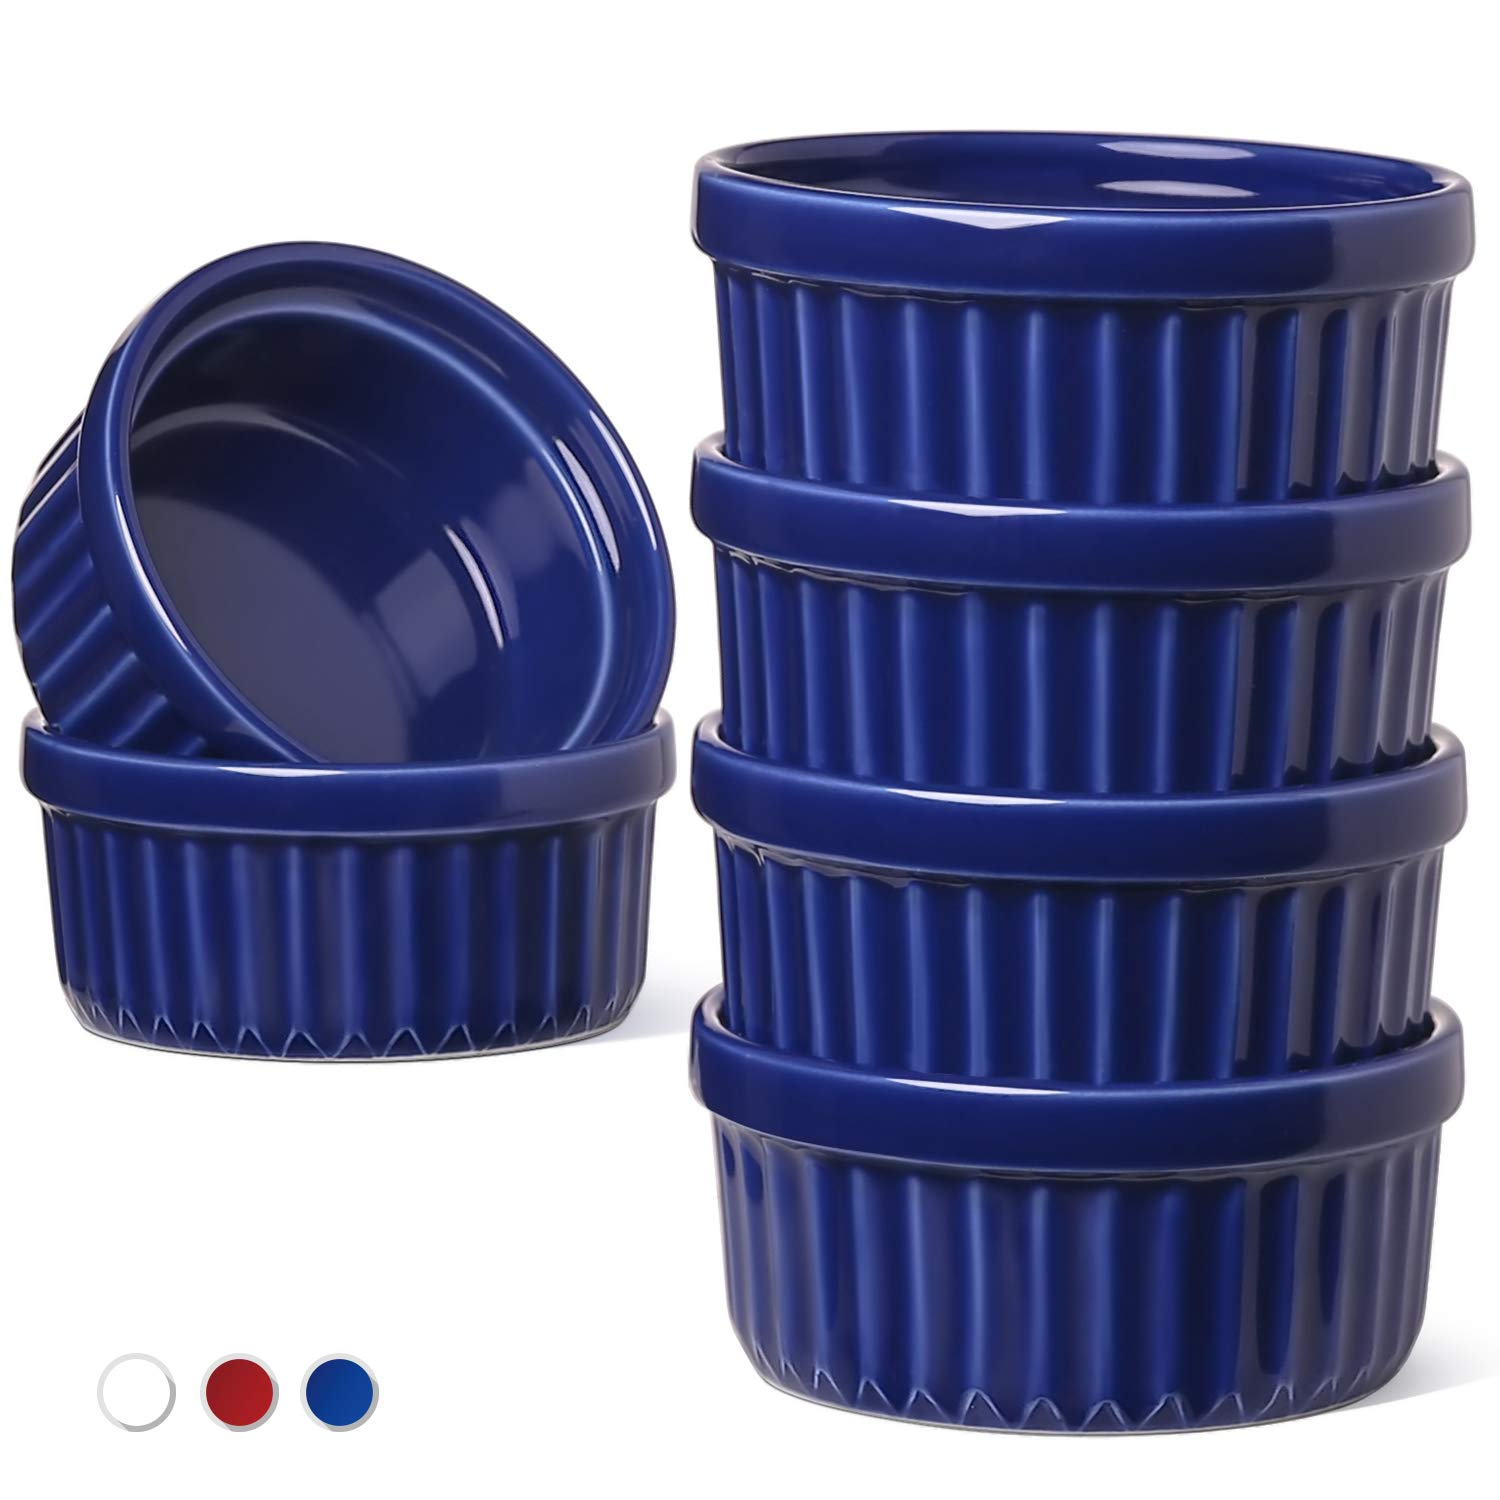 LE TAUCI Ramekins 4 Oz, Creme Brulee Dishes, Ramekin Set for Souffle, Dipping Sauces, Pudding, Set of 6, True Blue by LE TAUCI